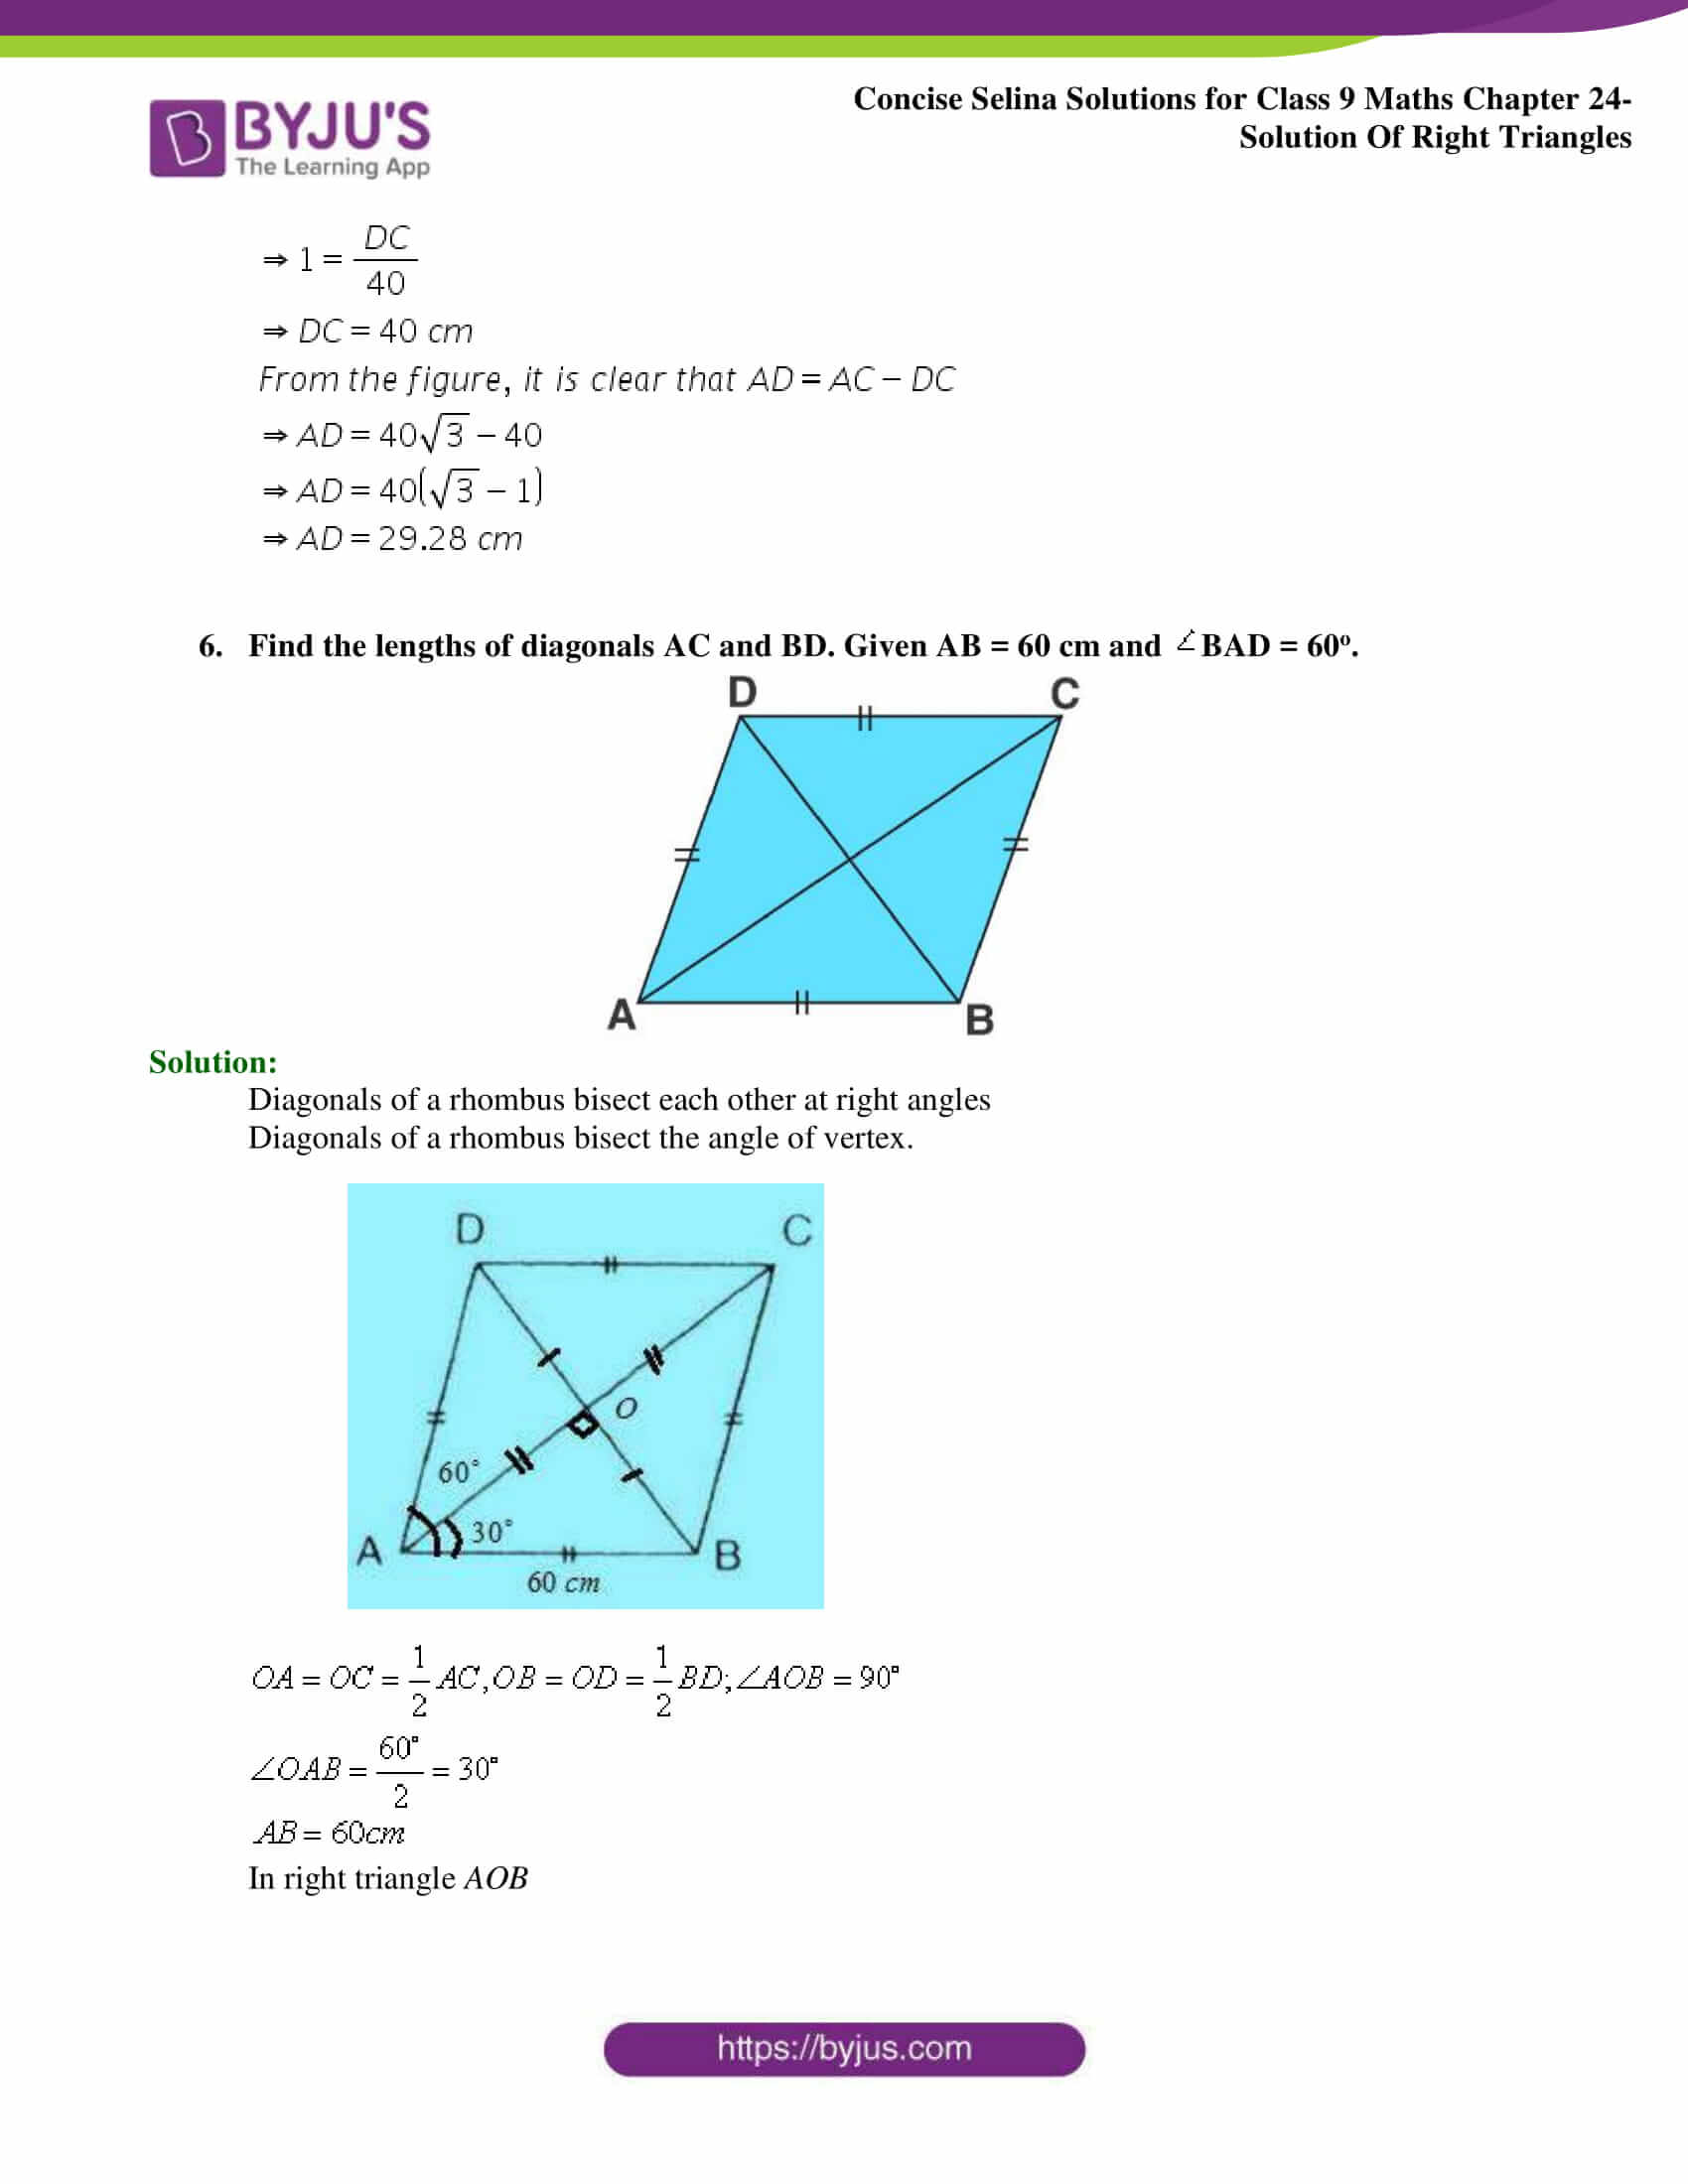 Concise Selina Solutions Class 9 Maths Chapter 24 Solution Of Right Triangles part 07